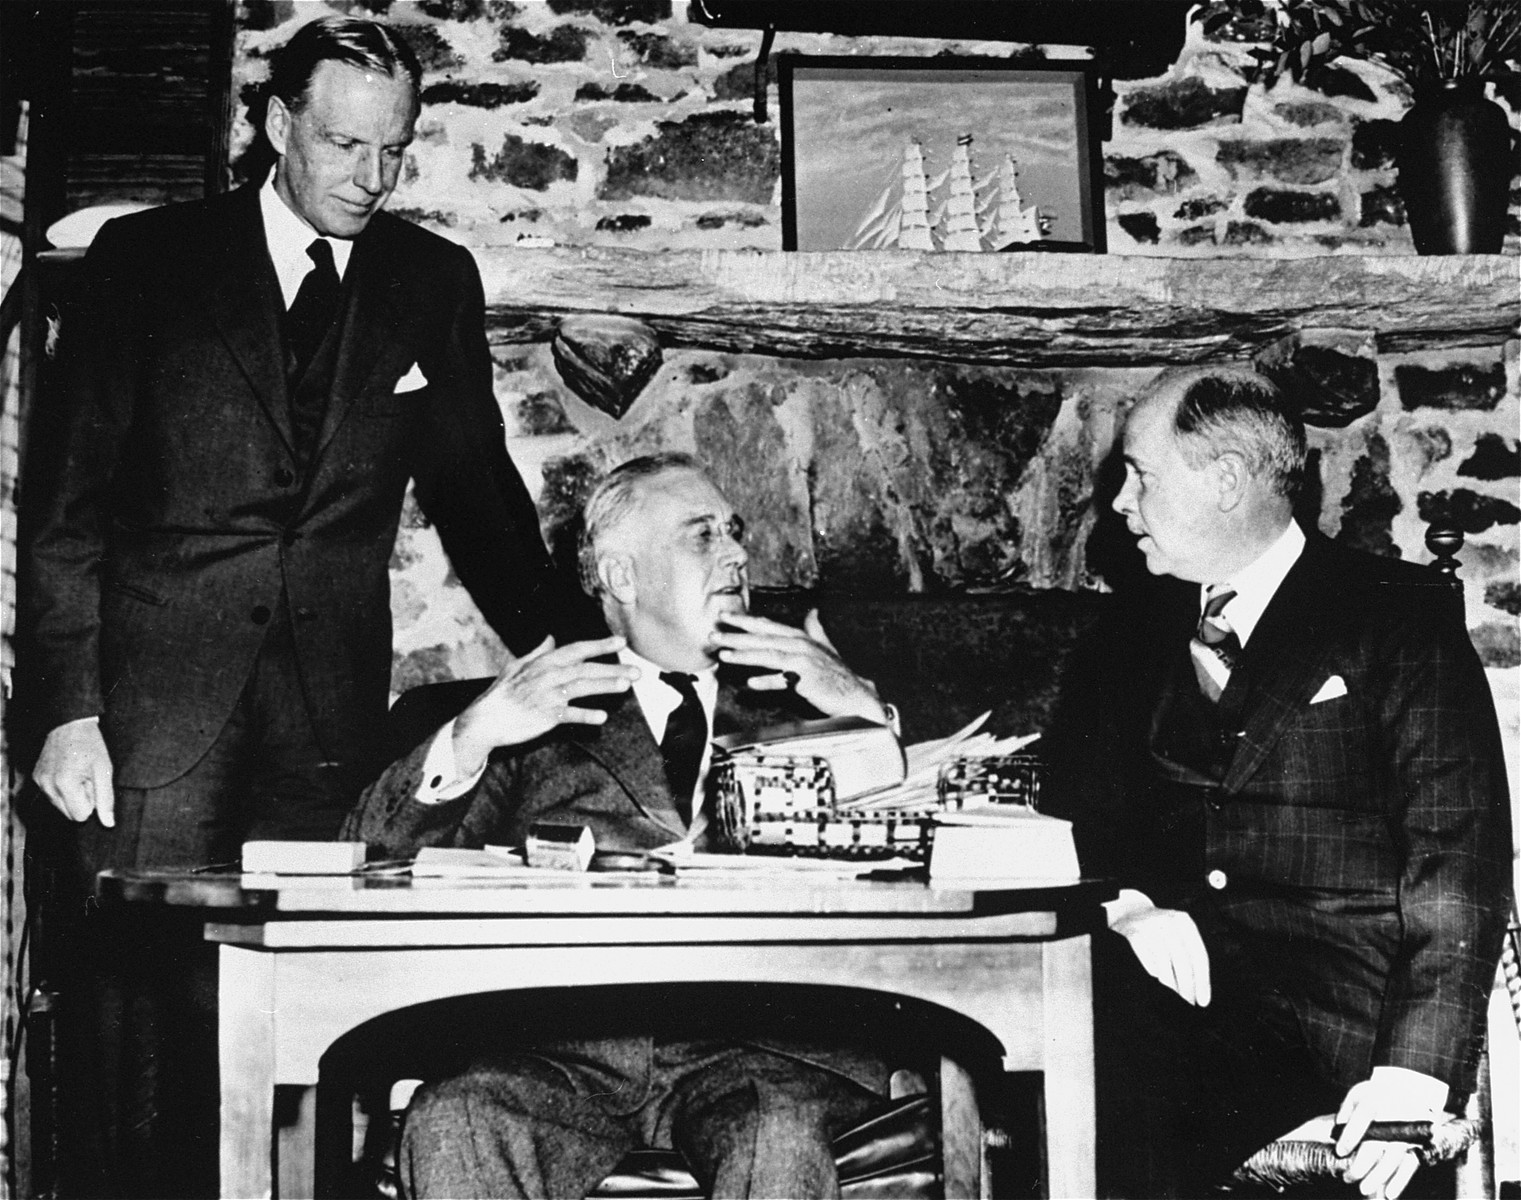 Franklin Delano Roosevelt confers with American ambassadors William Phillips (left), ambassador to Italy, and Hugh Wilson (right), ambassador to Germany.